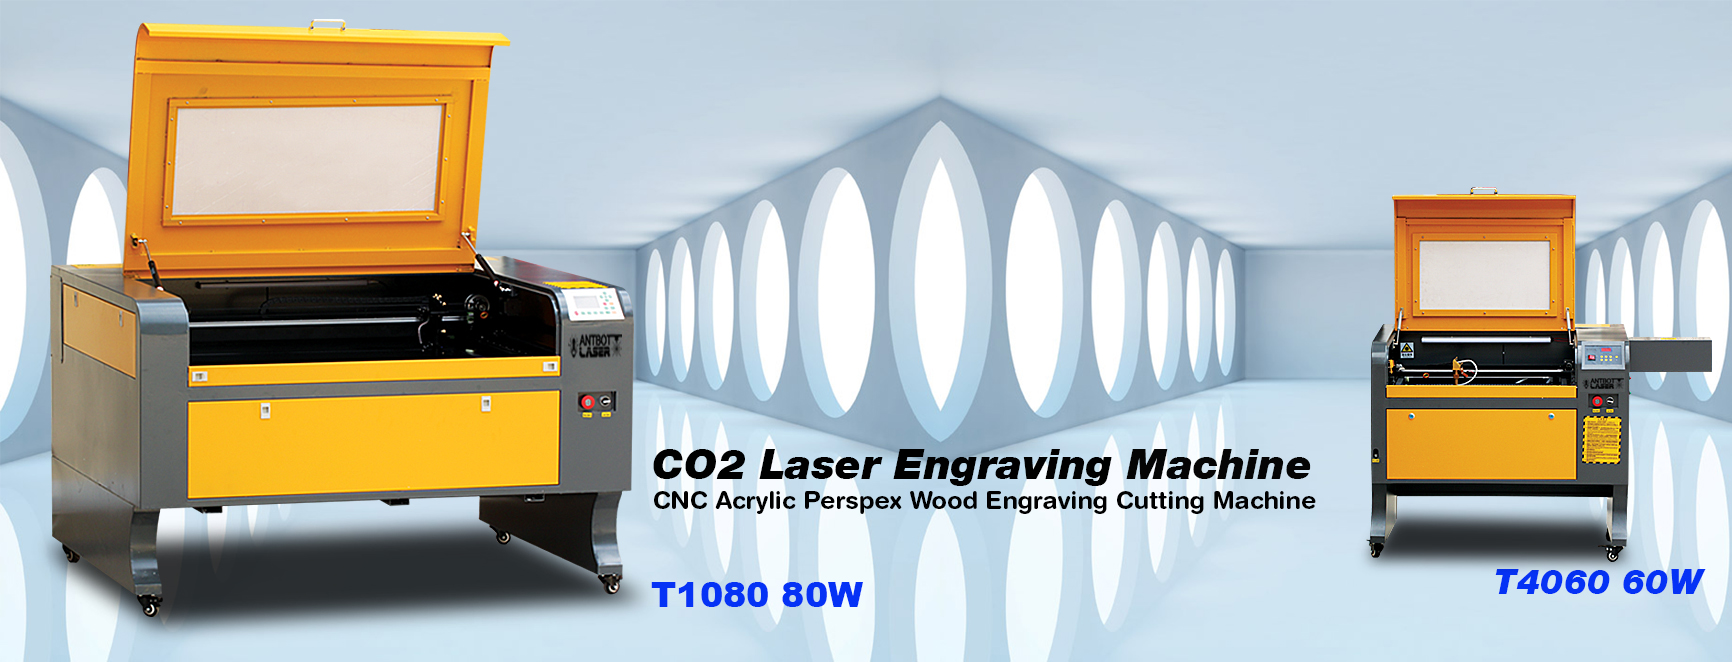 CO2 Laser Engraving & Cutting Machine